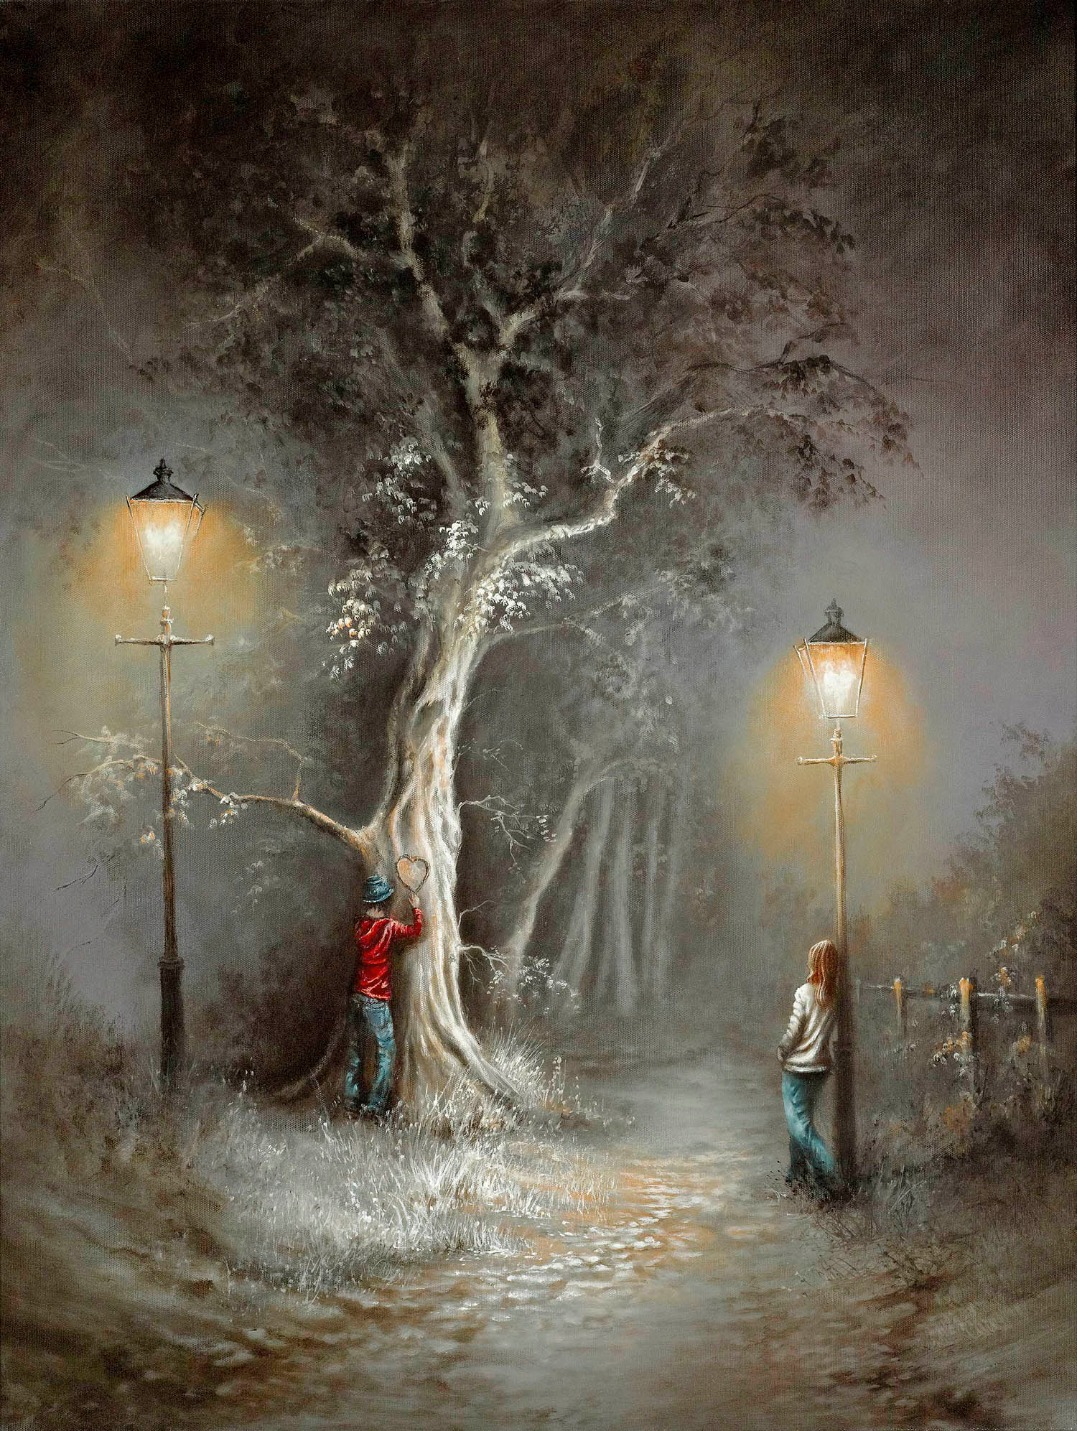 Listen to your Heart by Bob Barker